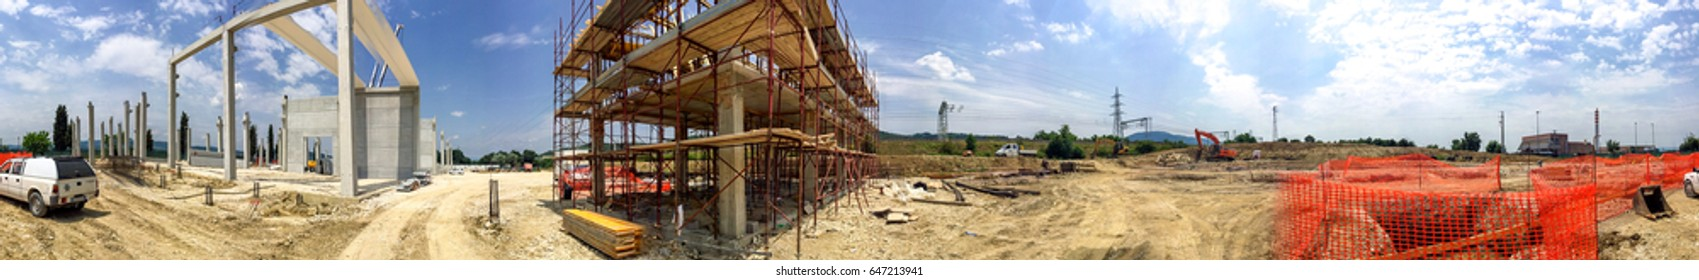 Building construction site, panoramic view.